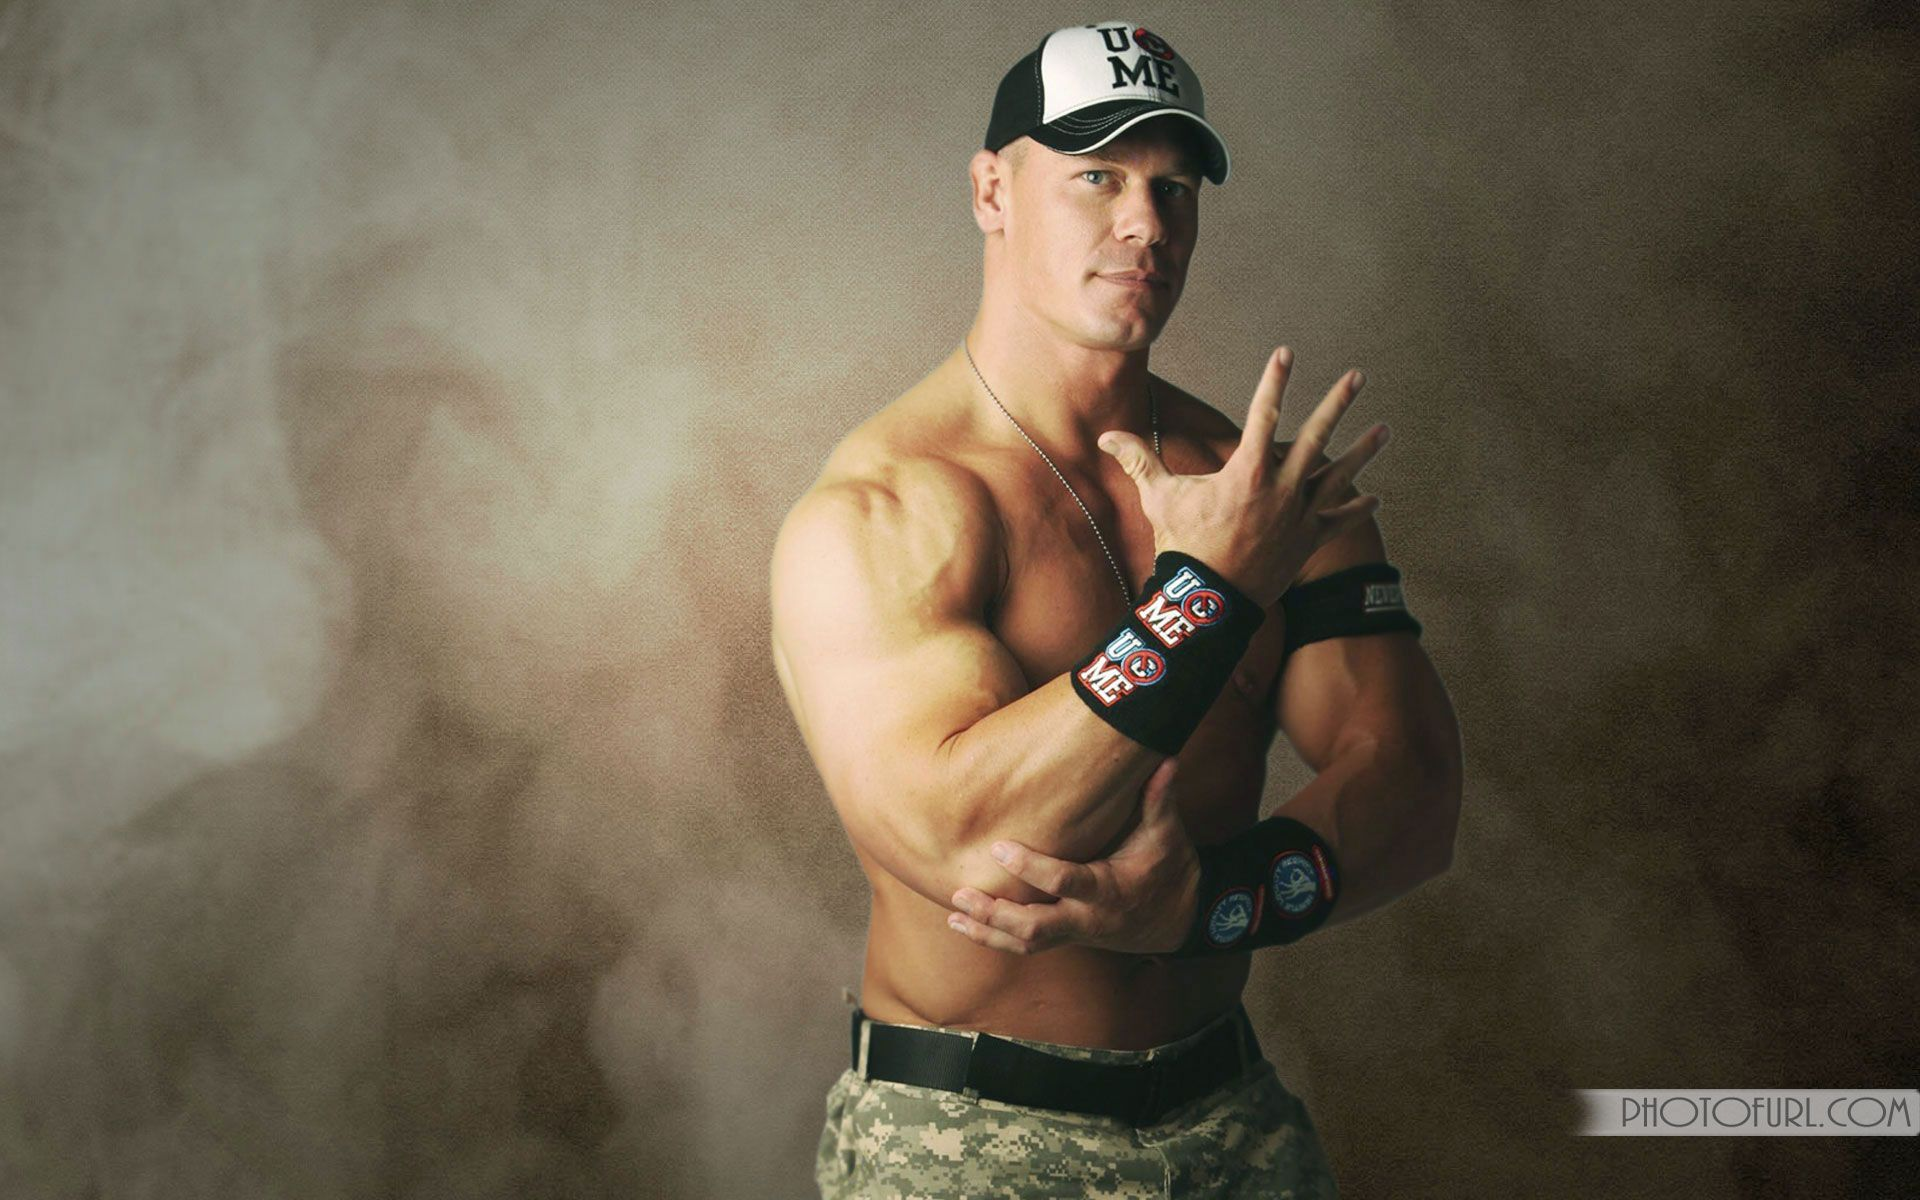 John Cena Bodybuilding Wallpaper